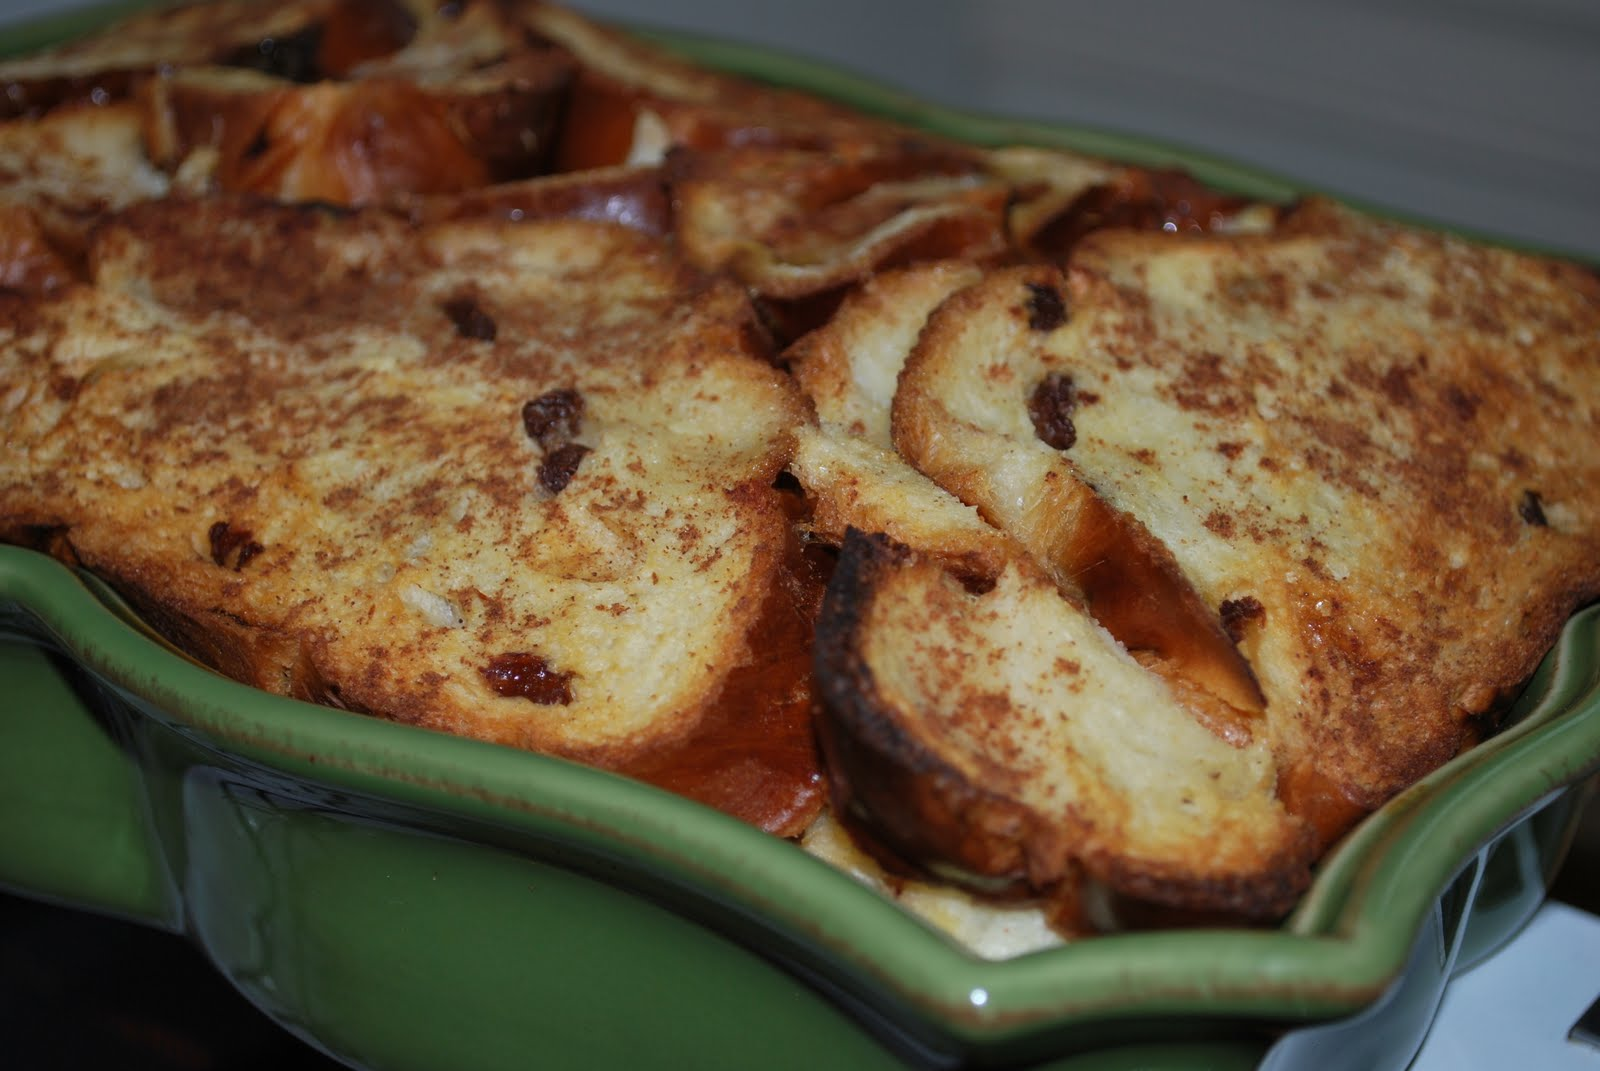 ... of the Kitchen: Enjoying Breakfast and Family: Baked French Toast